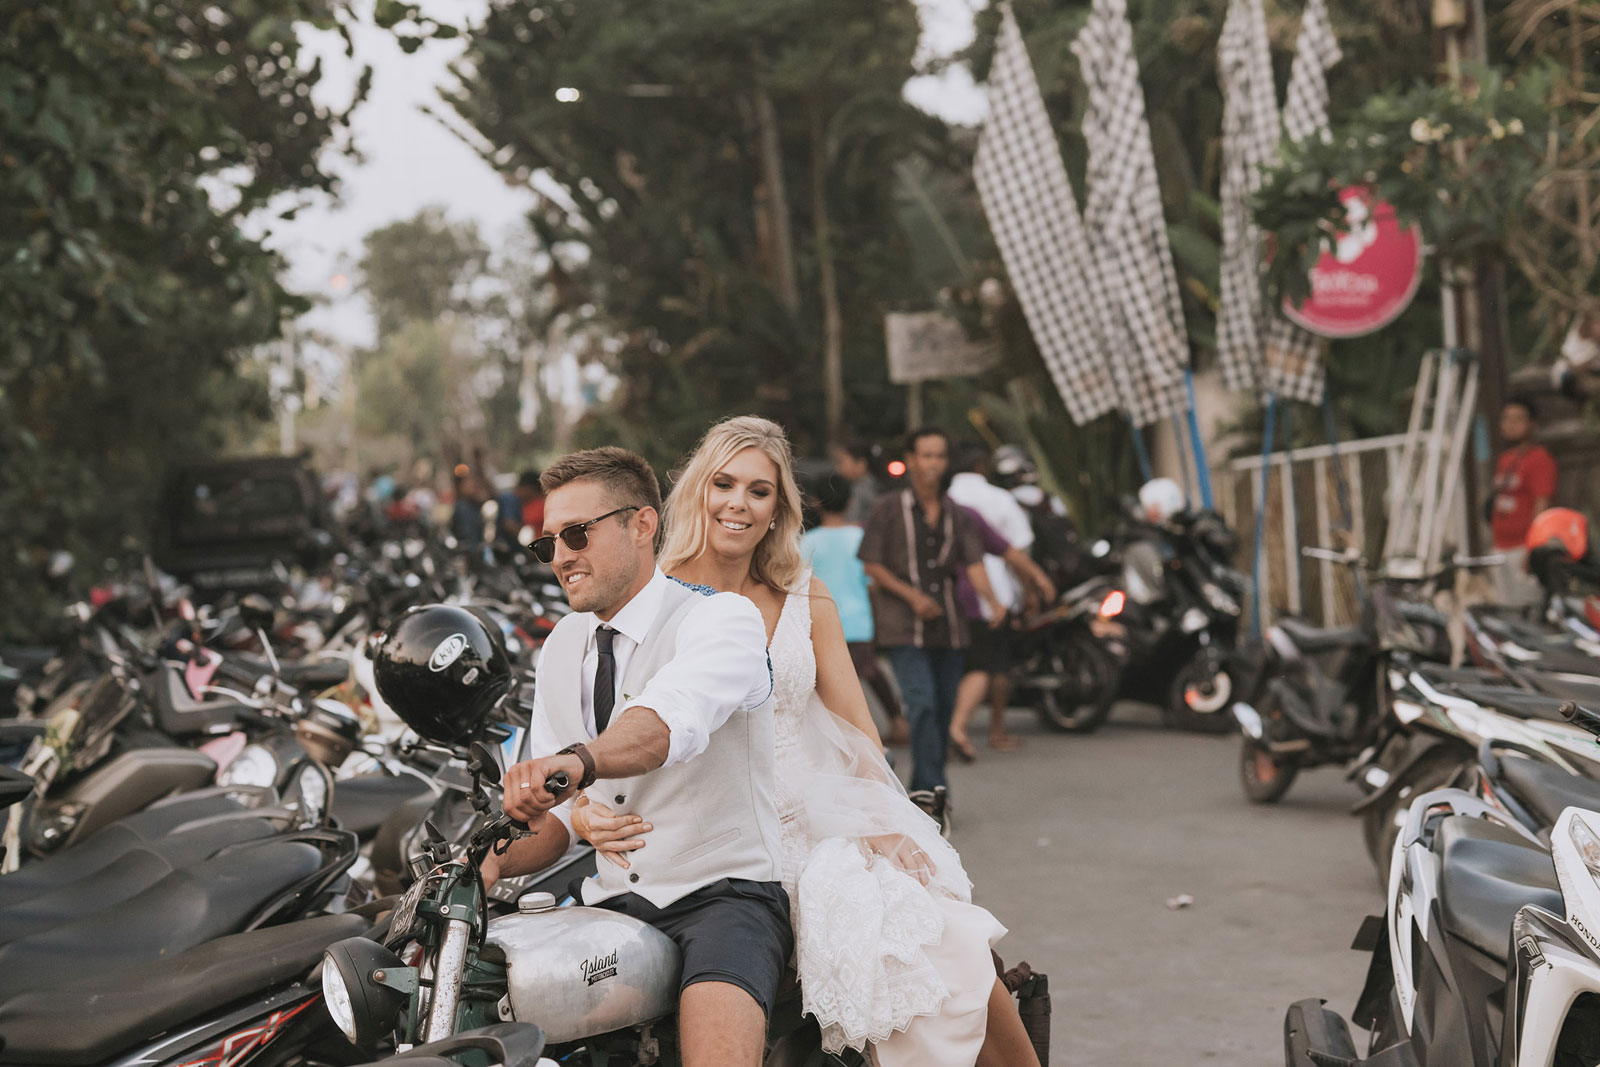 newfound-t-k-canggu-bali-ubud-wedding-photographer-714